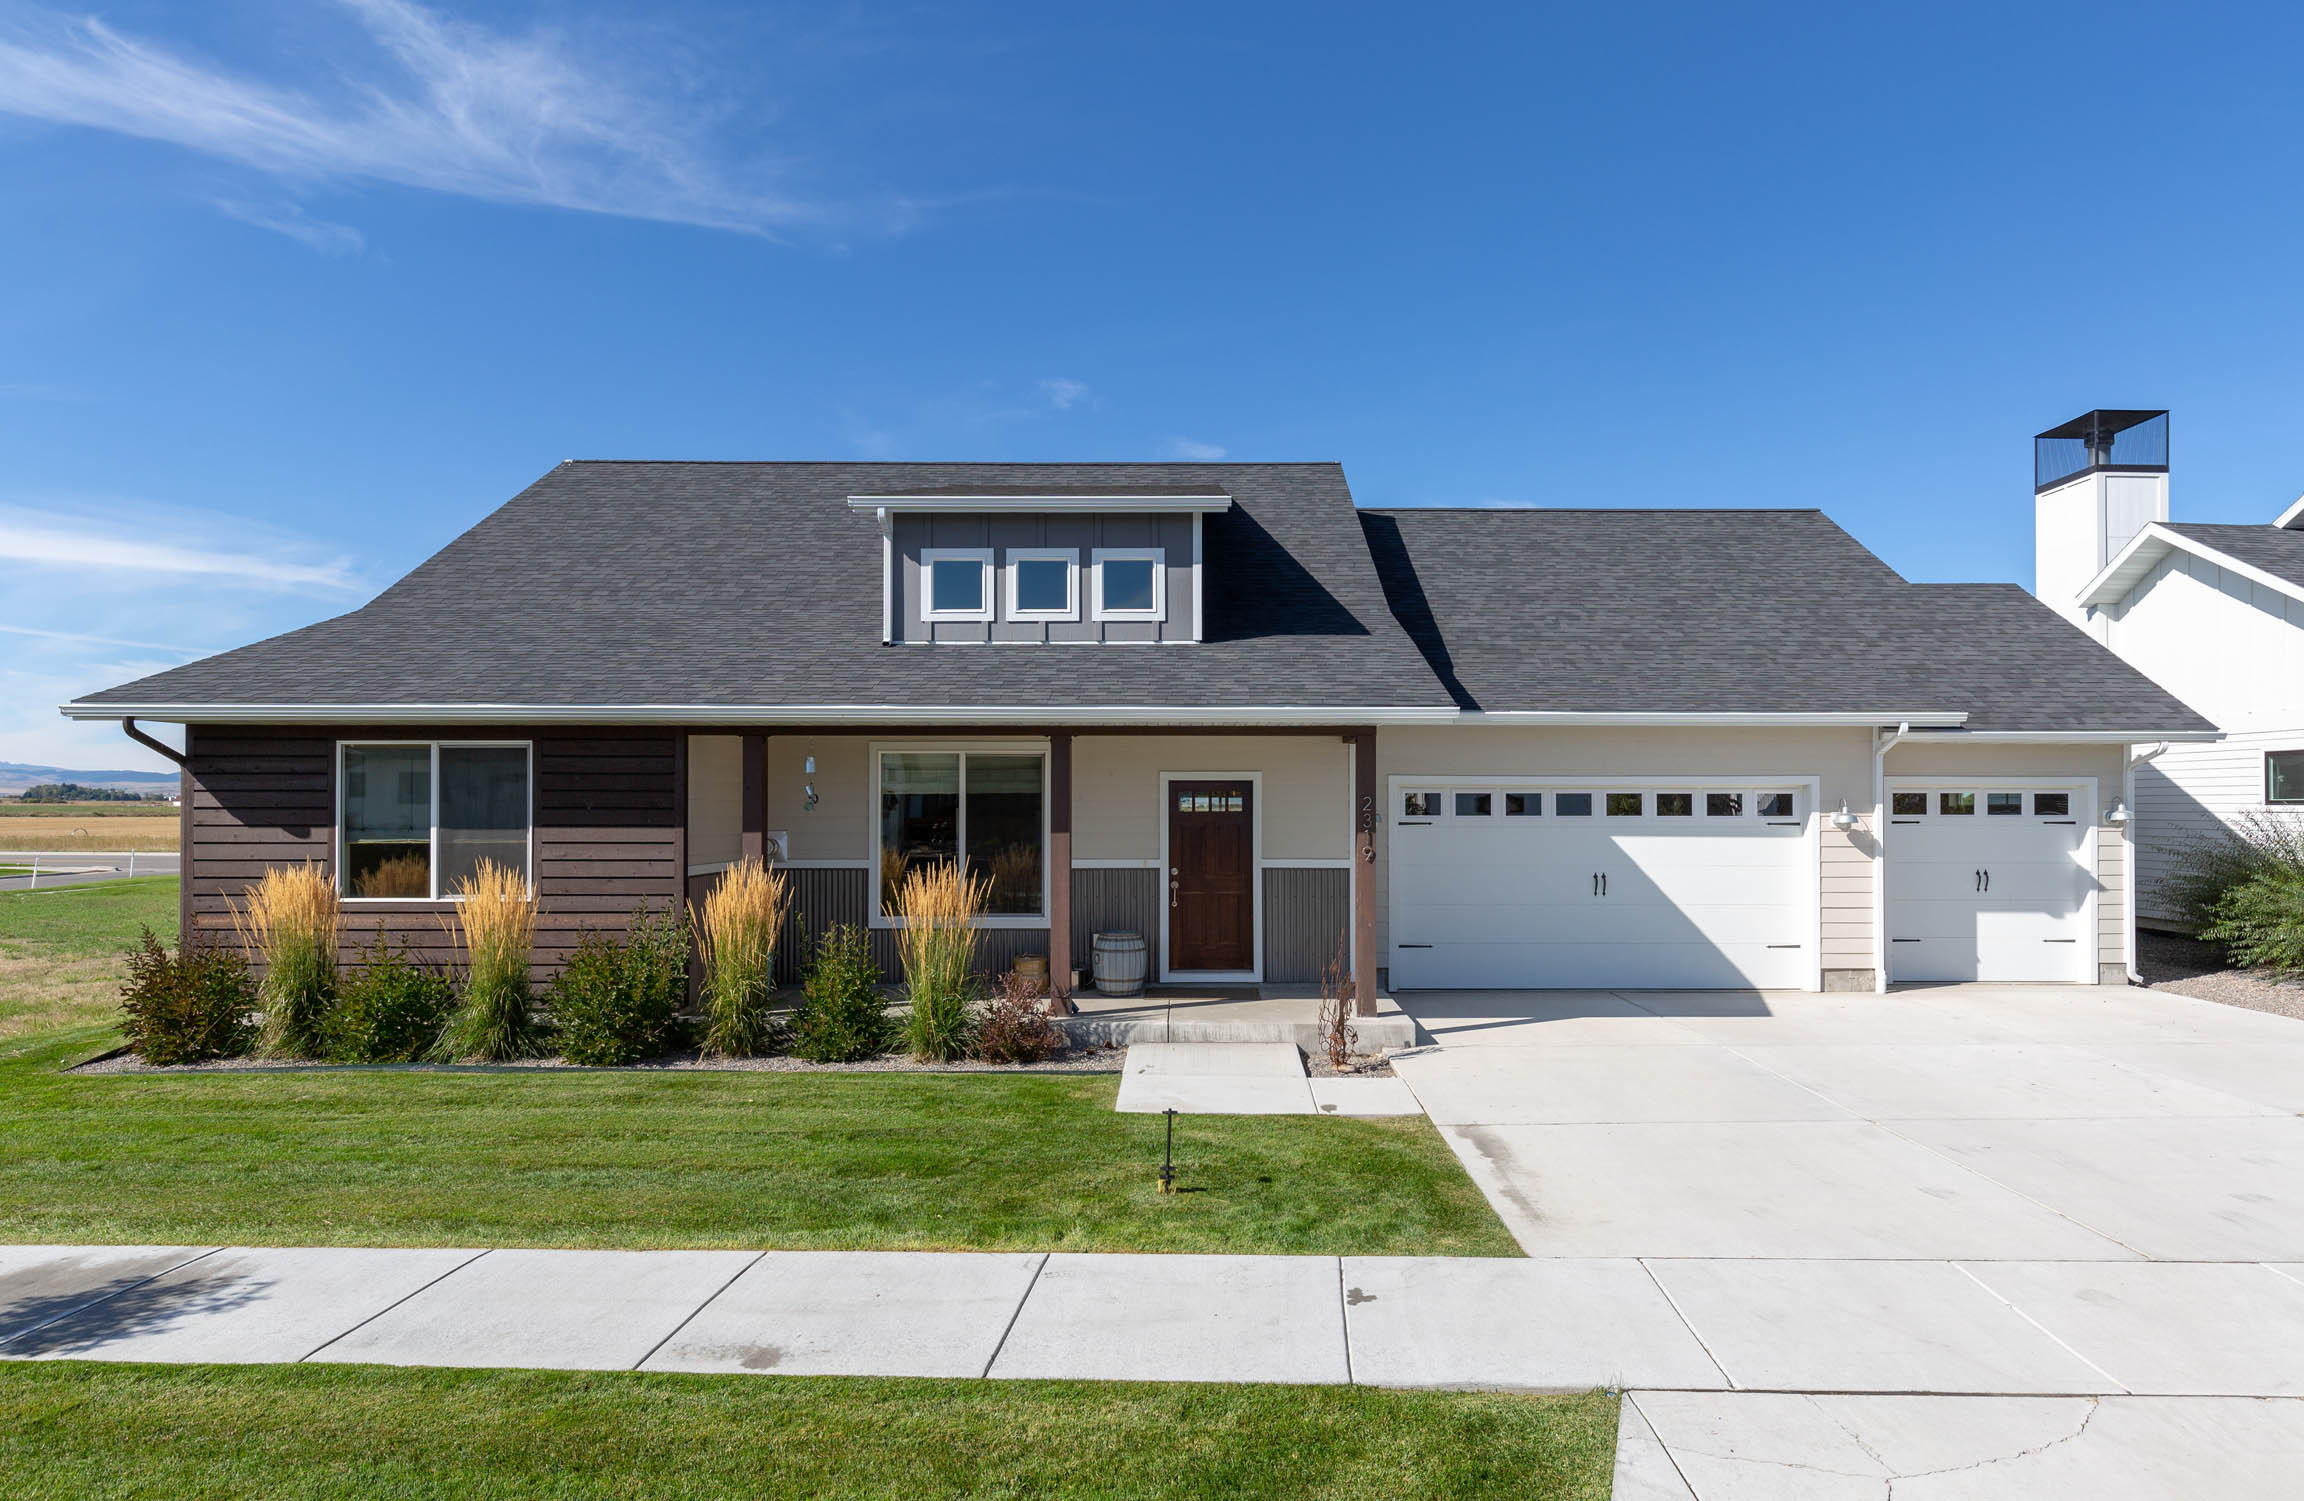 Modern Home For Sale in Bozeman